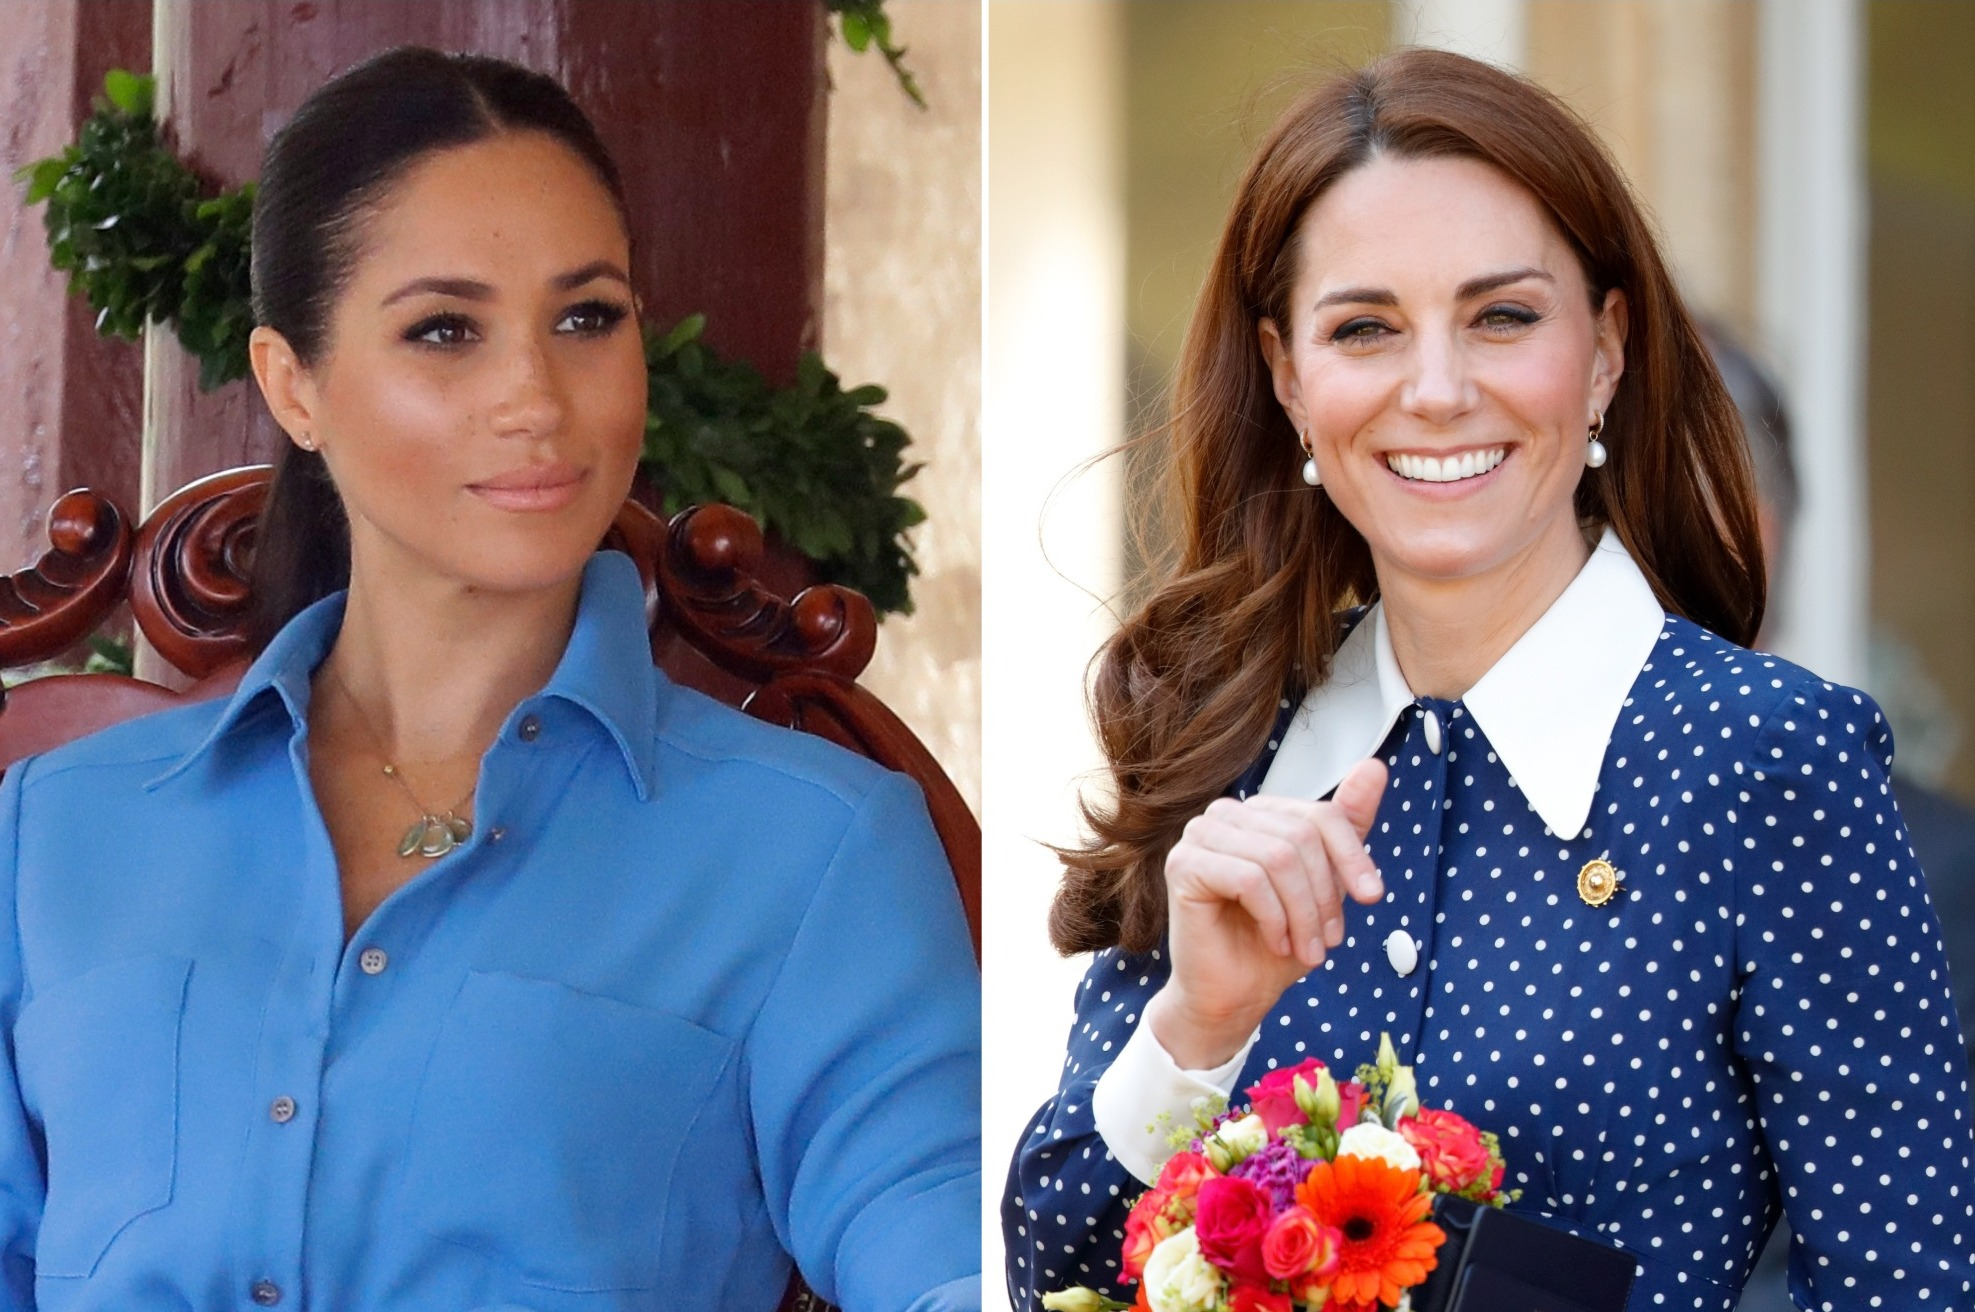 Meghan Markle disappointed Kate Middleton Missed Her Introduction To The Royal Family